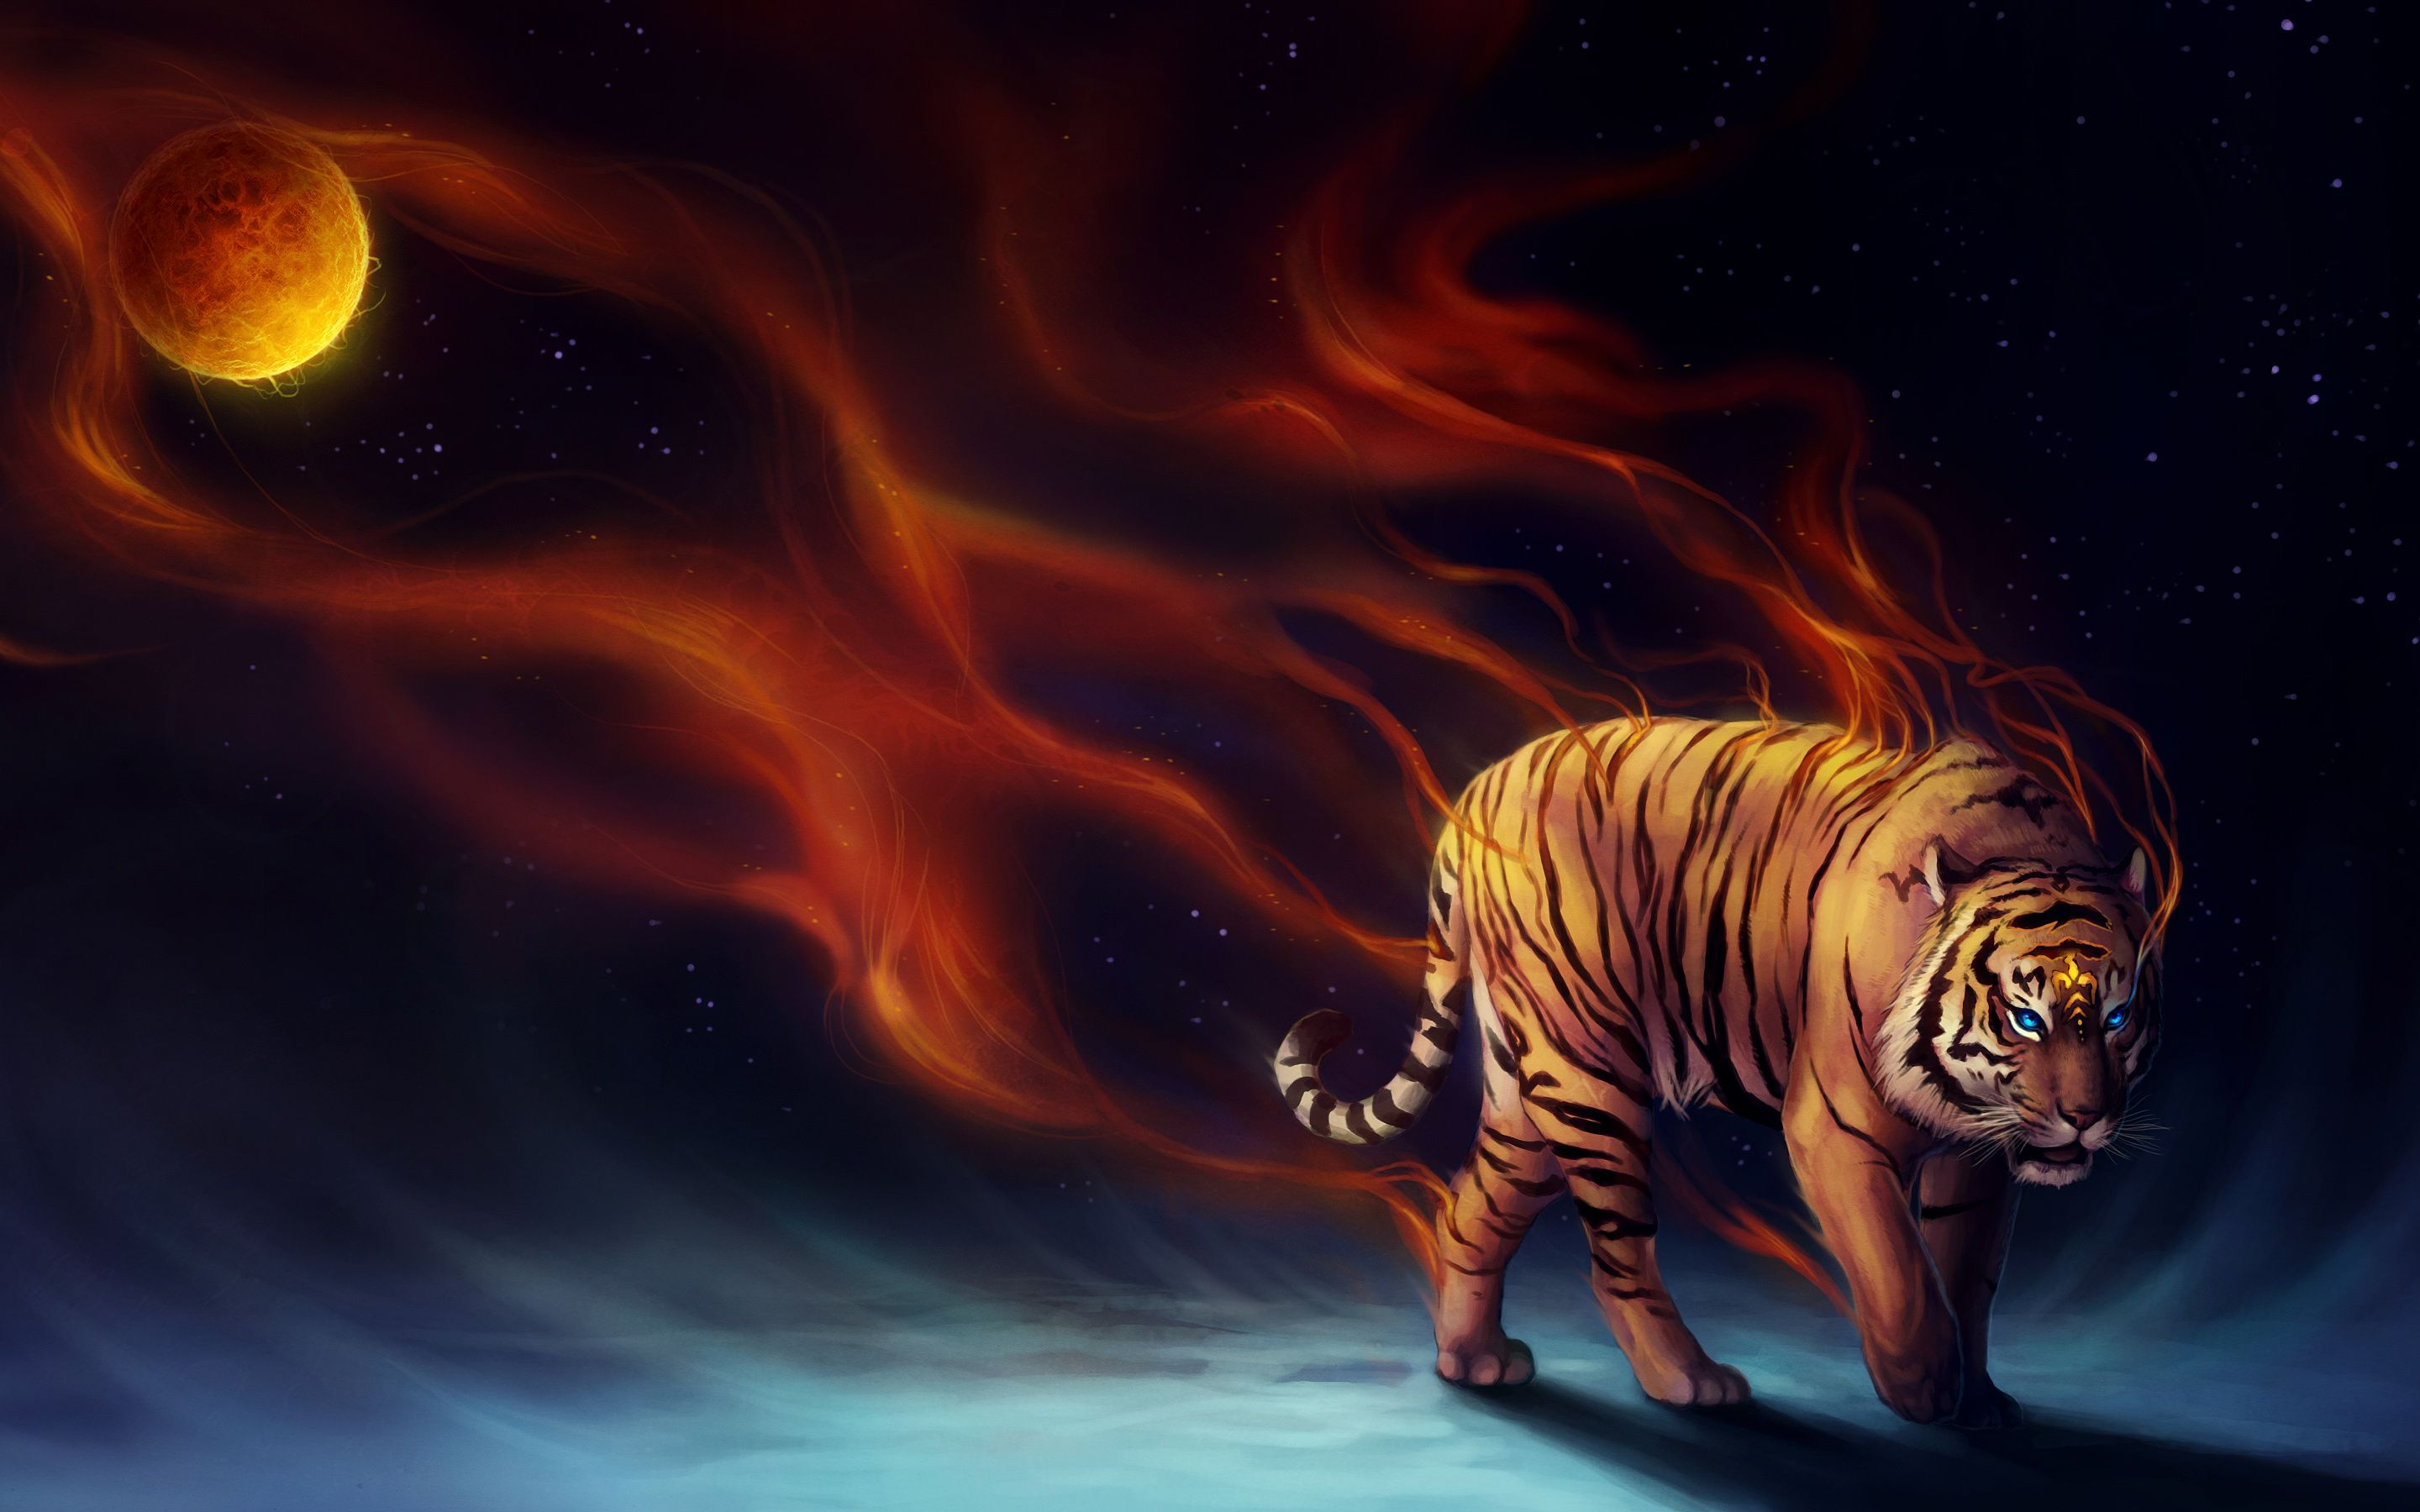 Mind Blowing Hd Downloads Tiger Wallpapers Dhd Wallpaper In